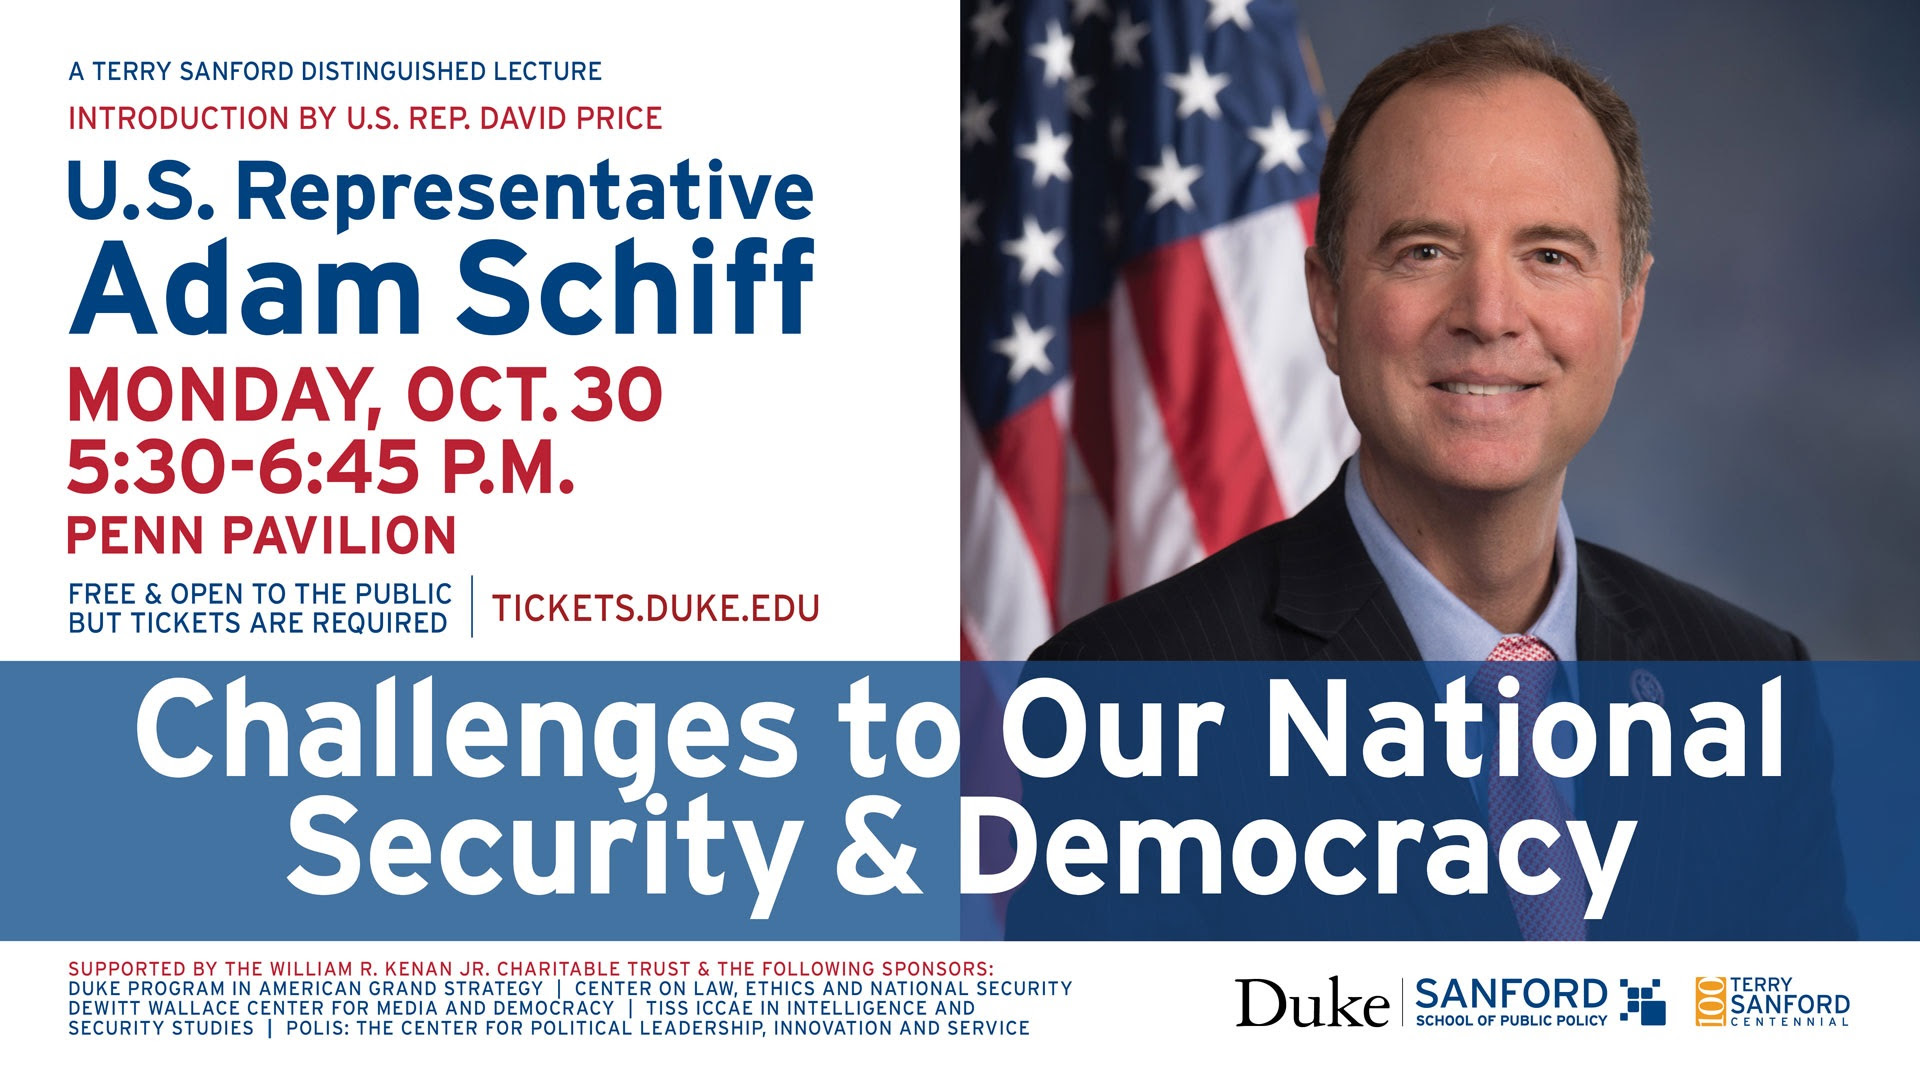 Challenges to our National Security and Democracy: A Terry Sanford Distinguished Lecture with US Representative Adam Schiff @ Penn Pavilion | Durham | North Carolina | United States